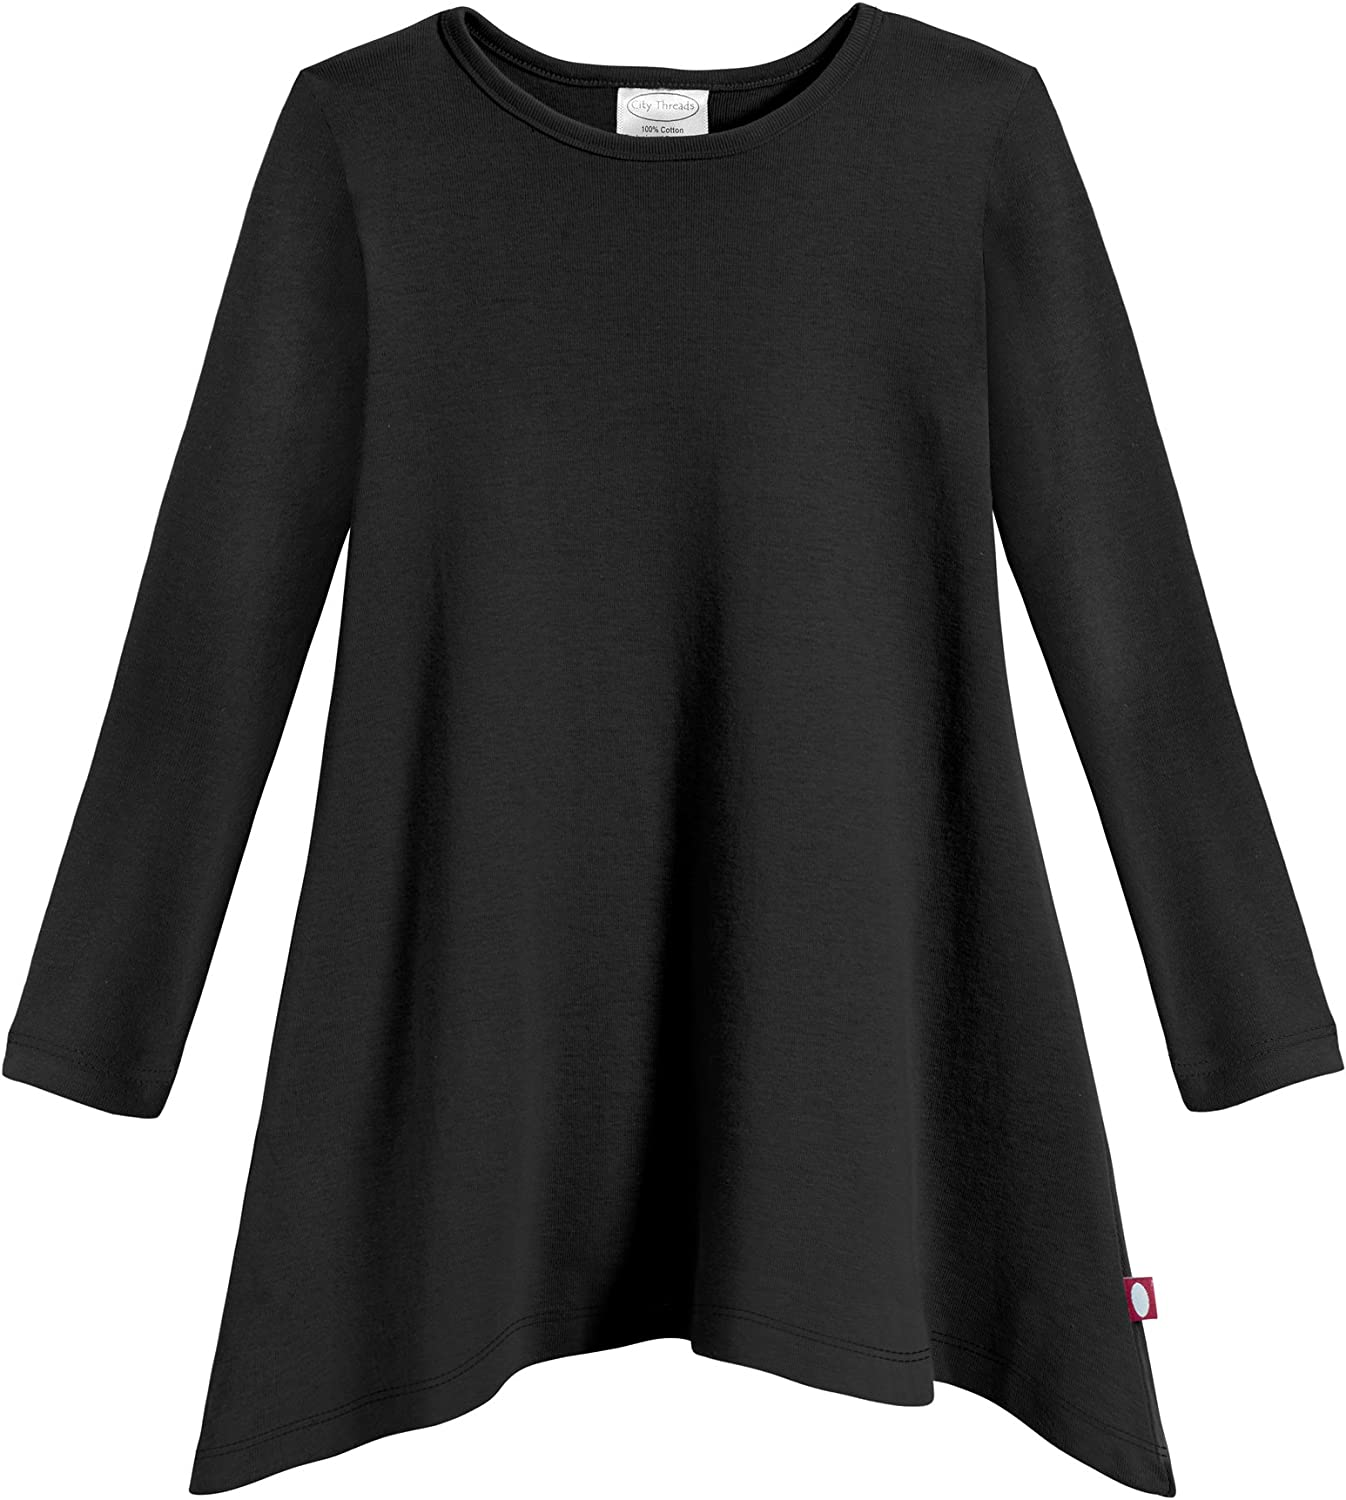 City Threads Sharkbite Girls Long Sleeve Tshirt Dress - Modern Stylish Tunic Top, 100% Natural Cotton Made in USA